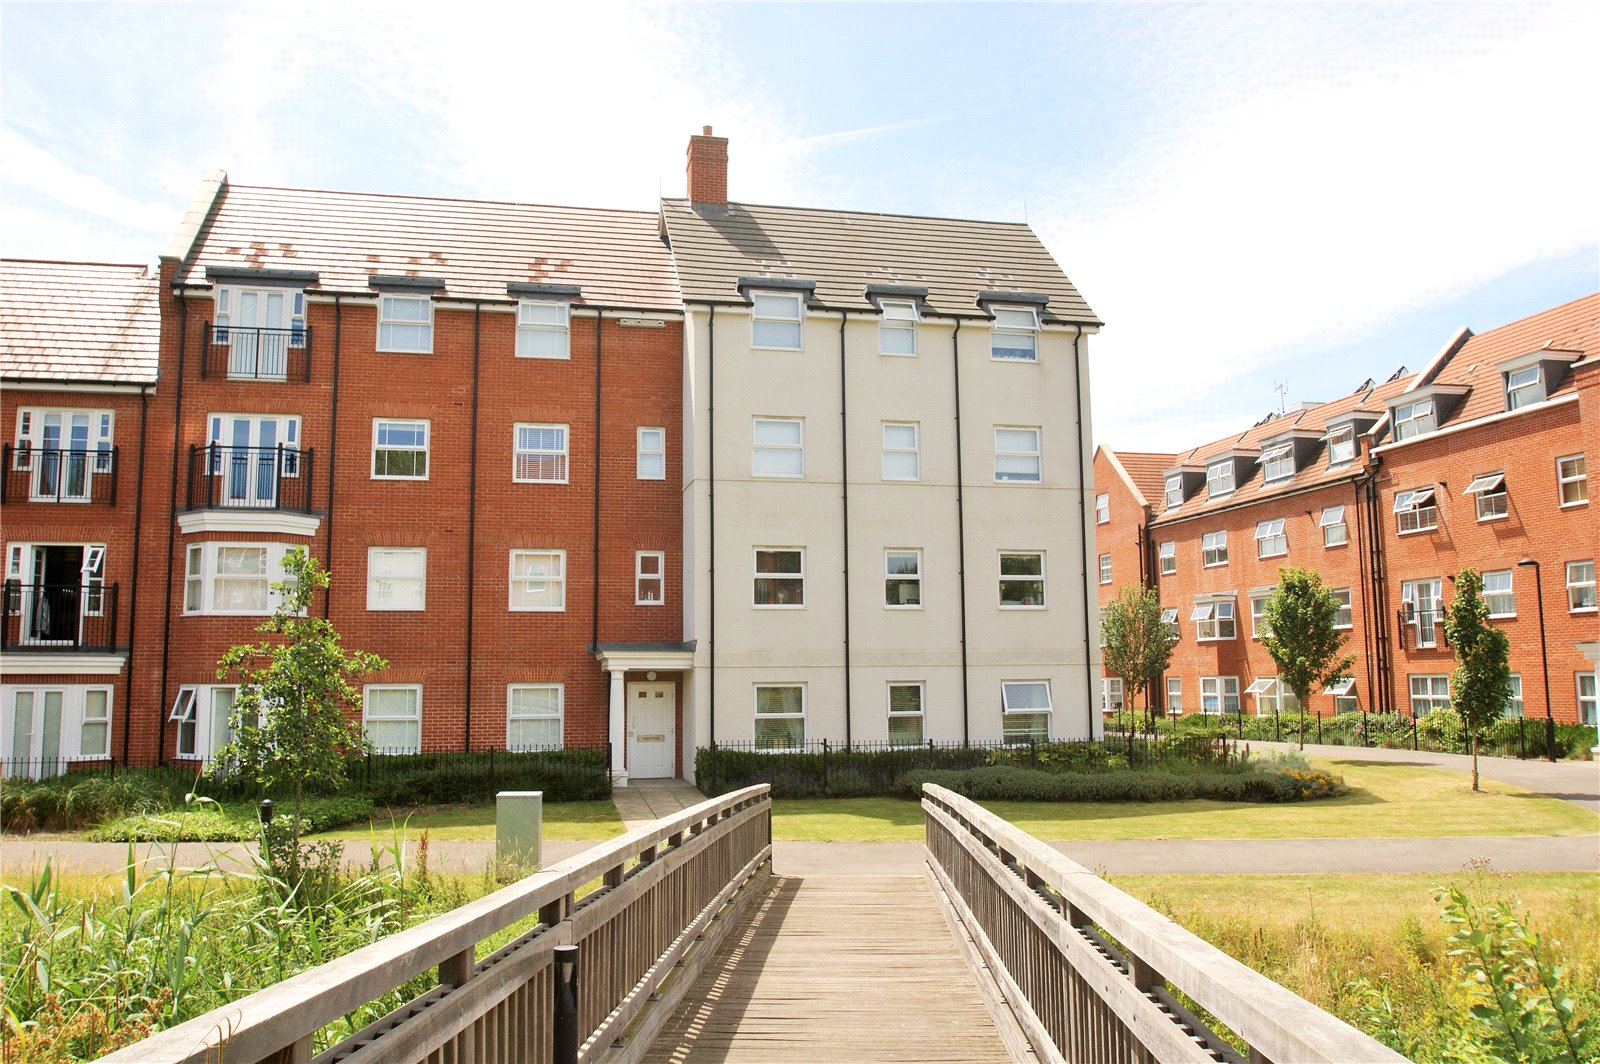 2 Bedrooms Apartment Flat for sale in Imogen House, Ashville Way, Wokingham, Berkshire, RG41